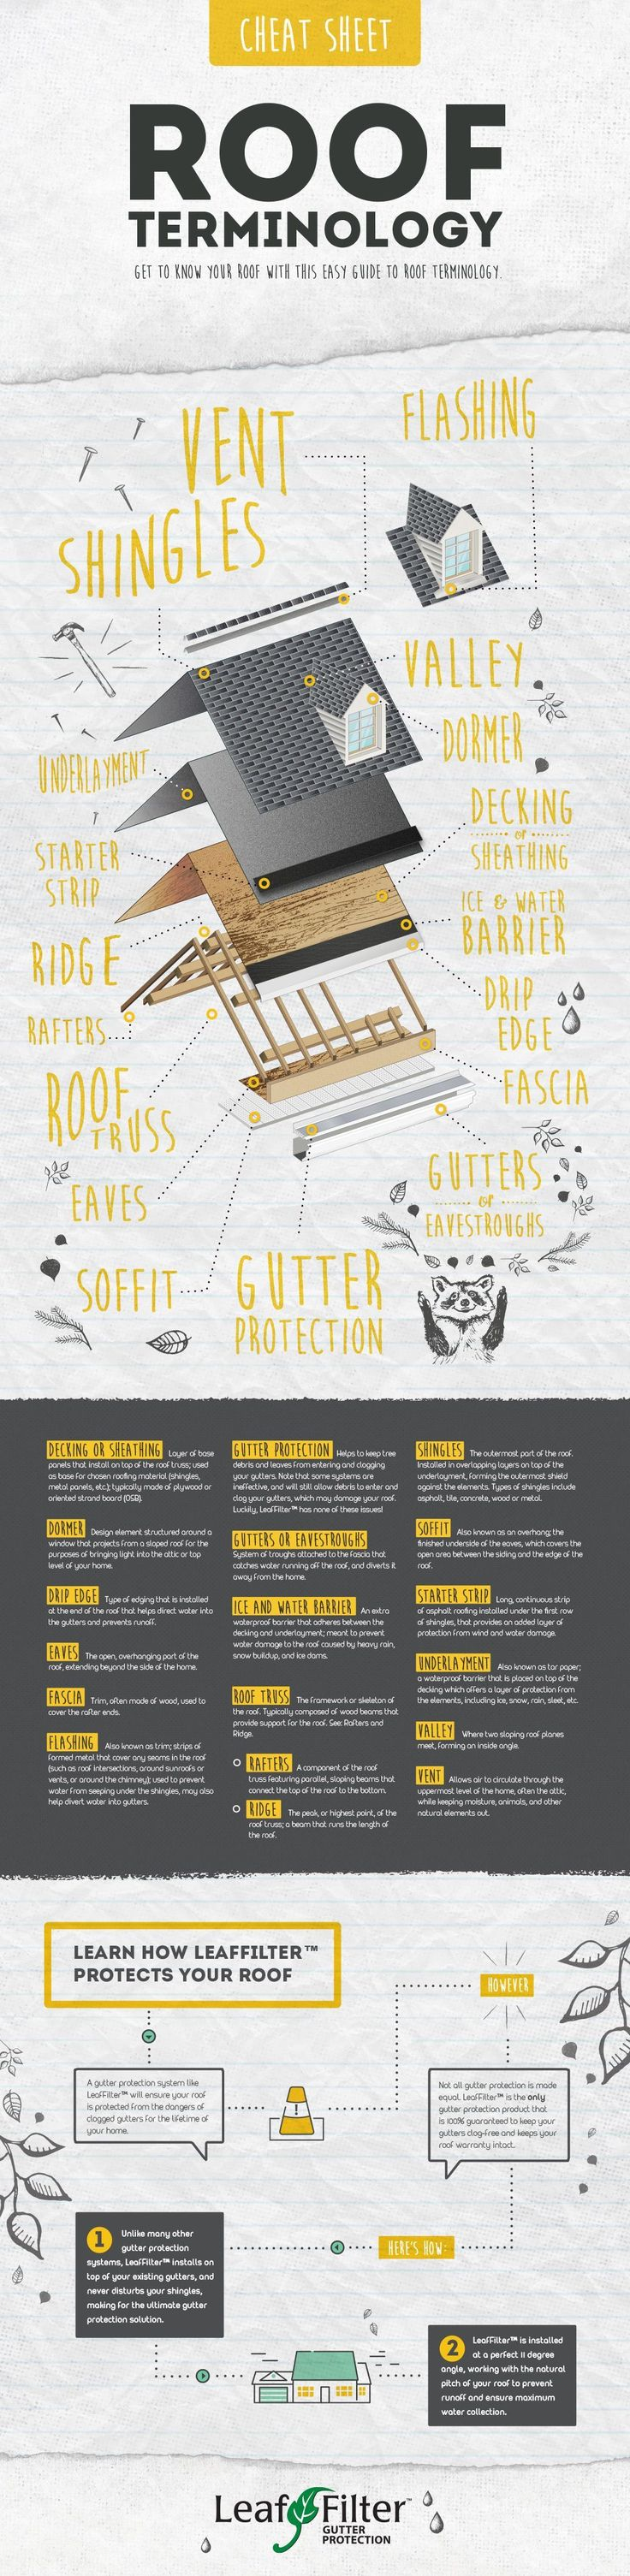 Roof Terminology Cheat Sheet infographic | LeafFilter North, LLC #woodworkinginfographic